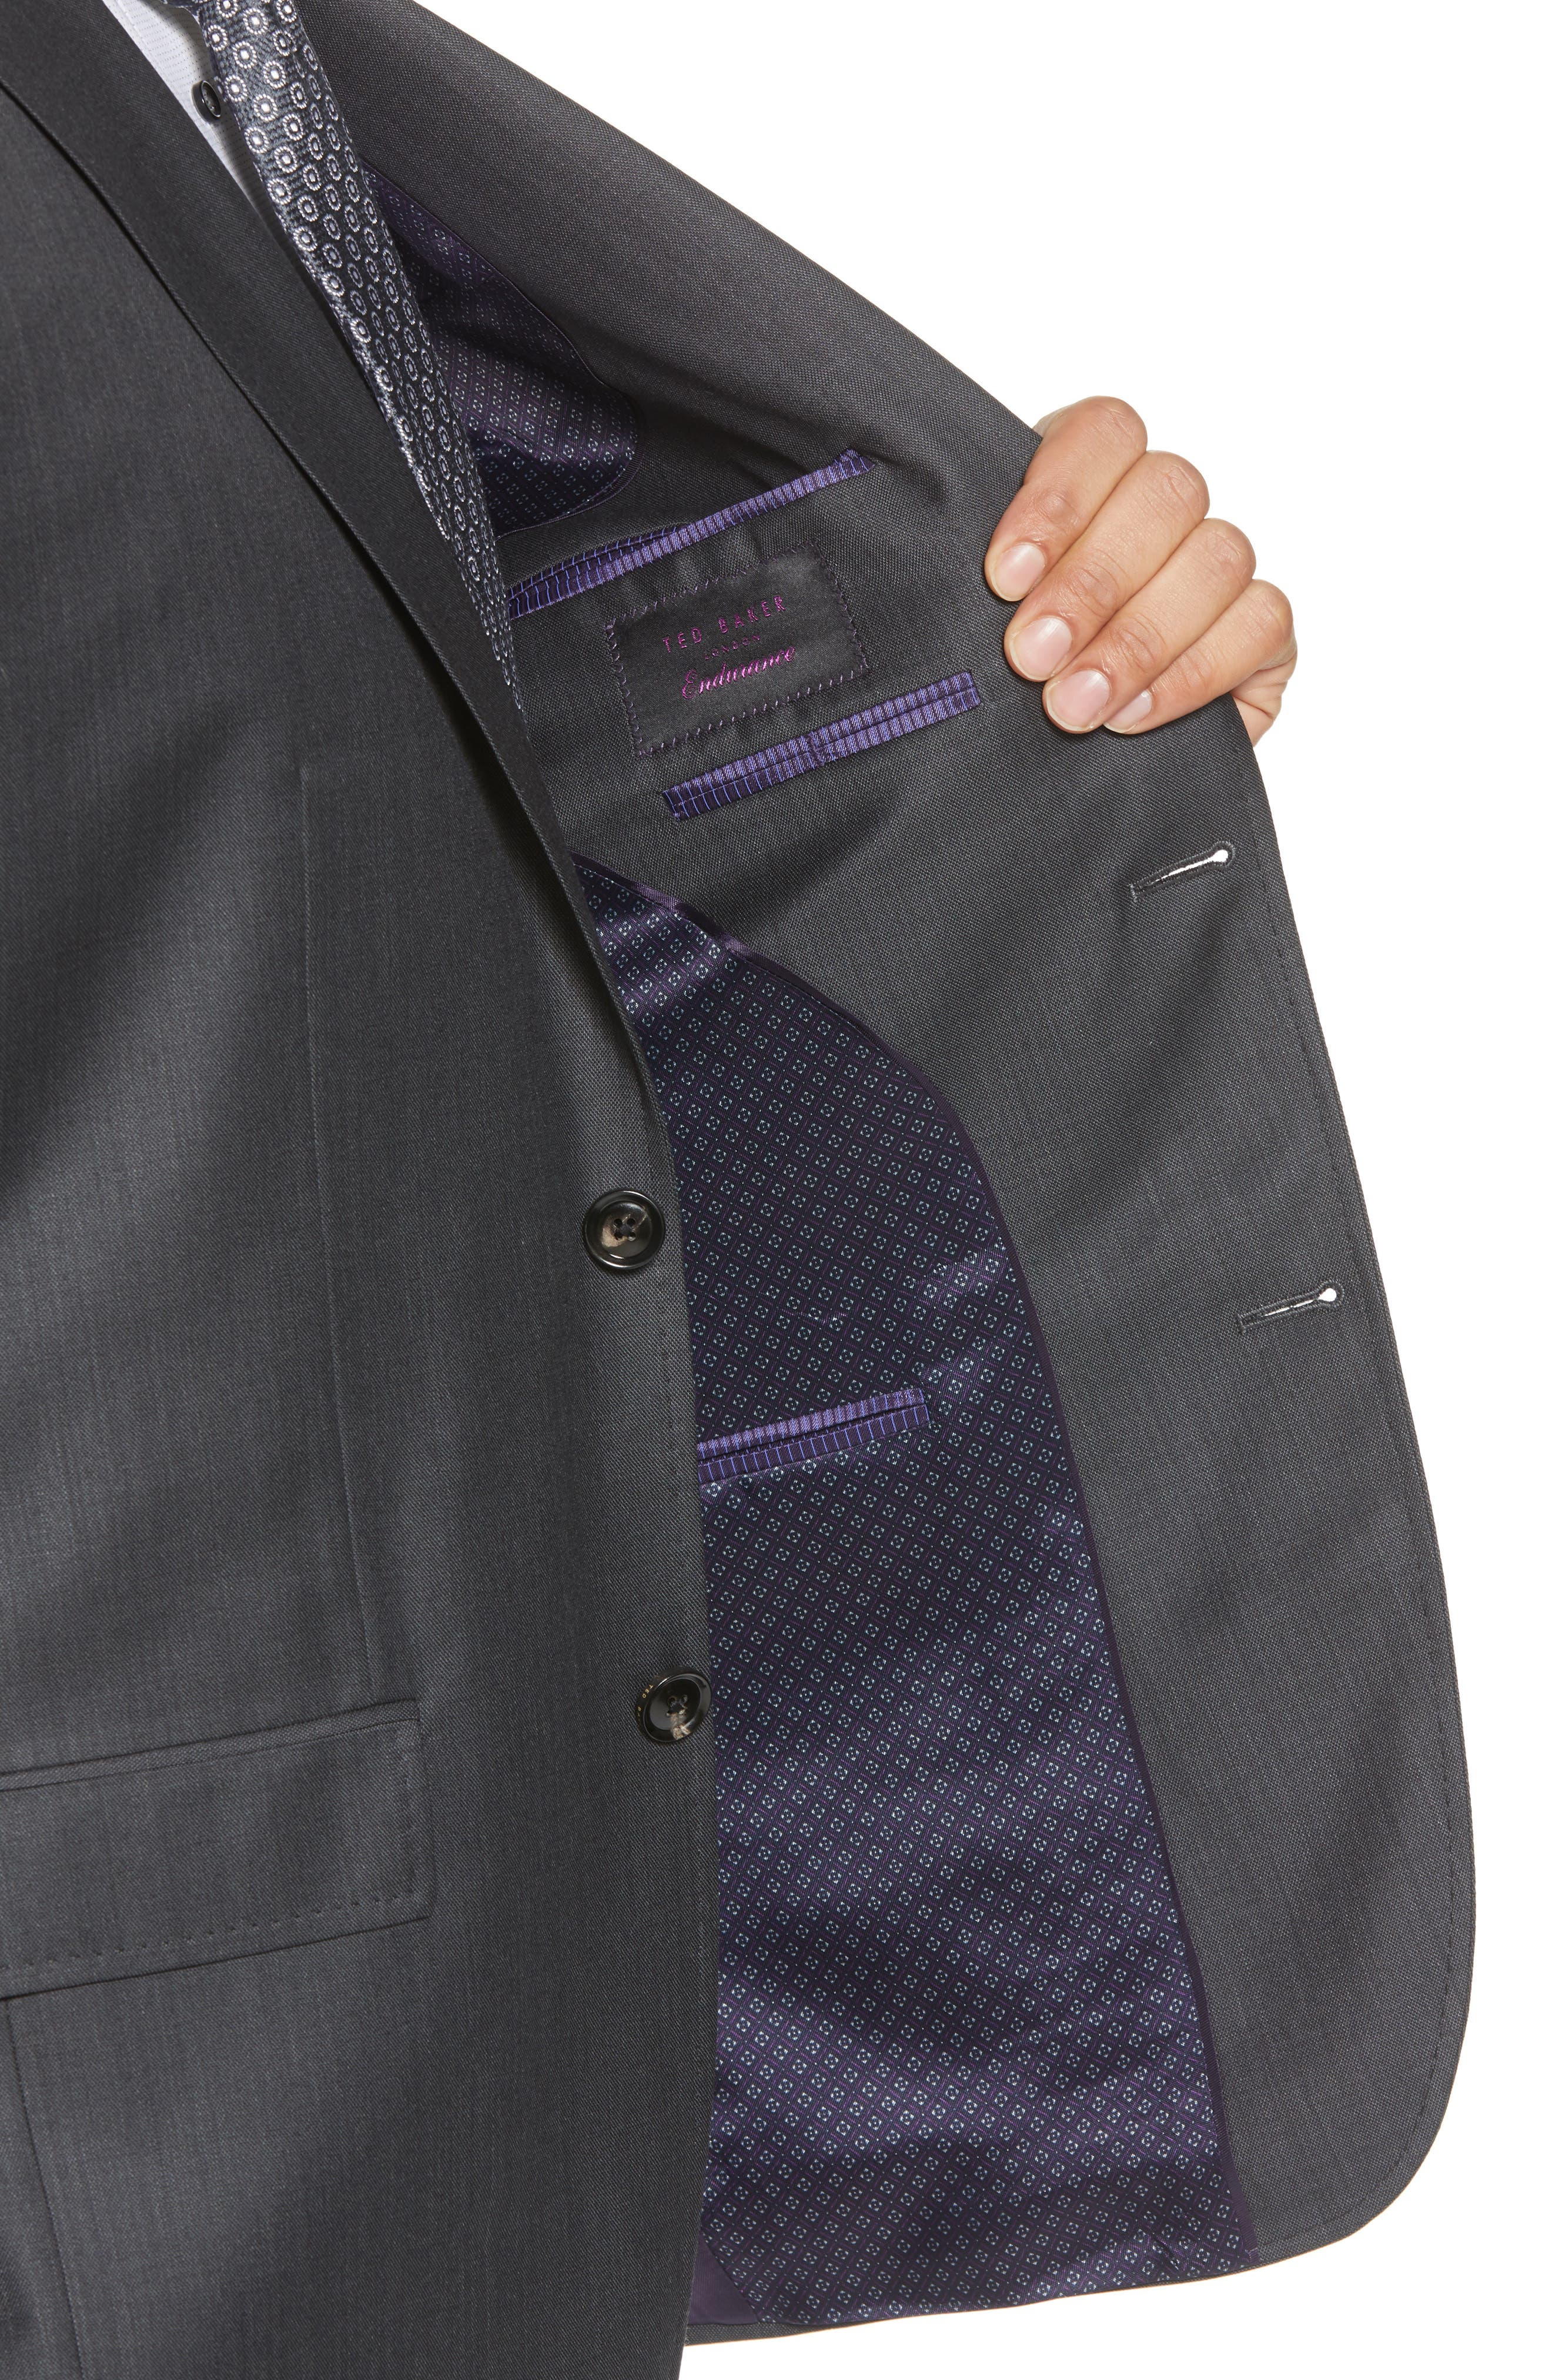 TED BAKER LONDON, Jay Trim Fit Solid Wool Suit, Alternate thumbnail 4, color, CHARCOAL